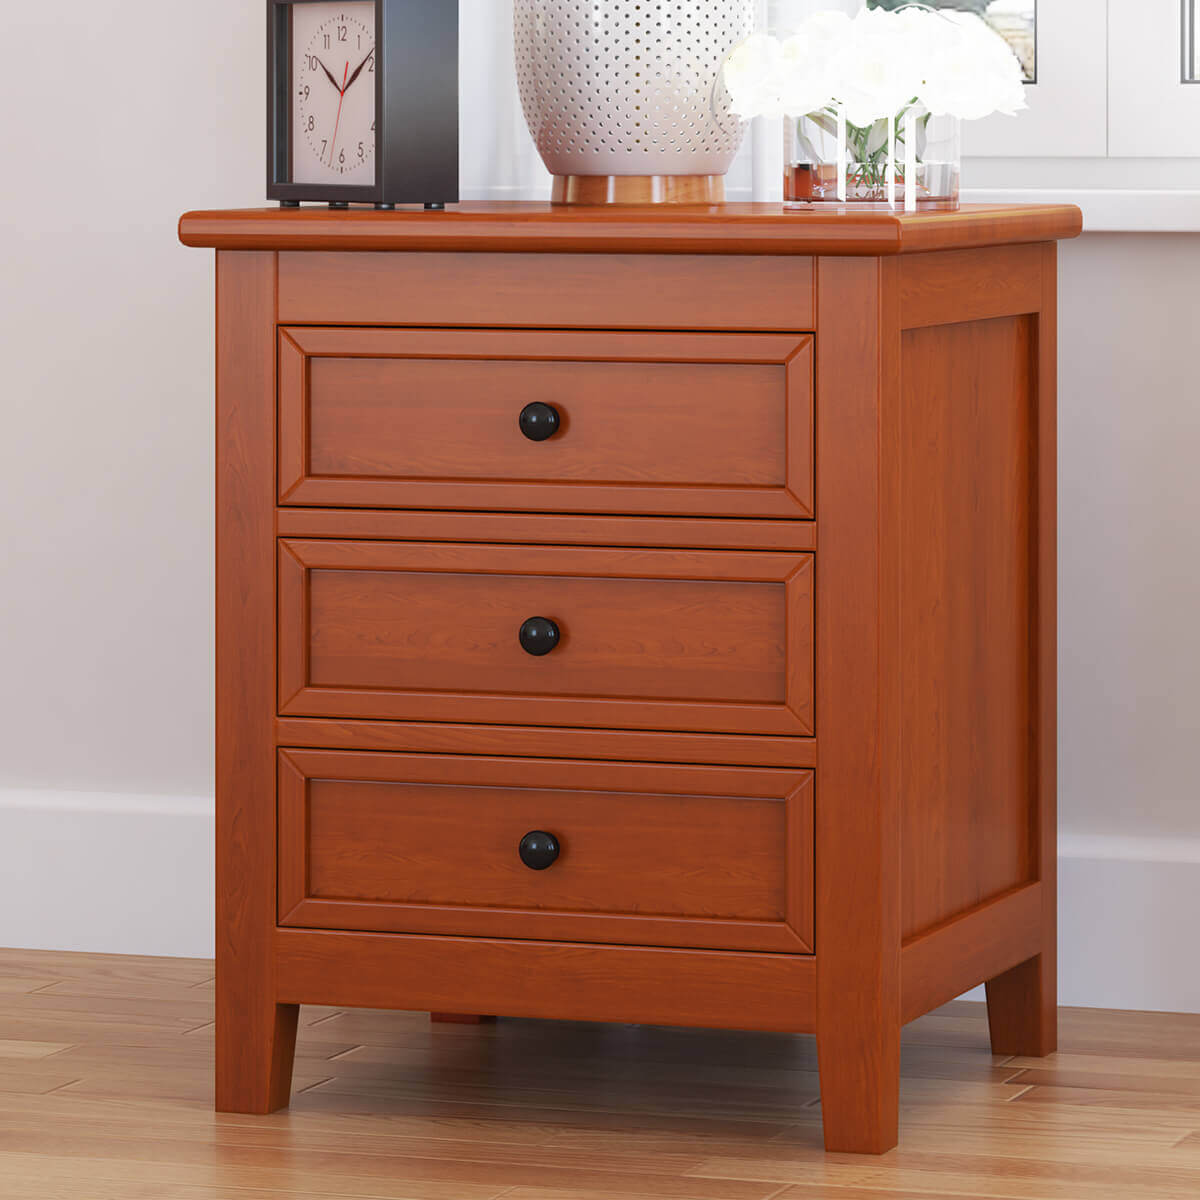 Kristoff Solid Mahogany Wood 3 Drawer Nightstand